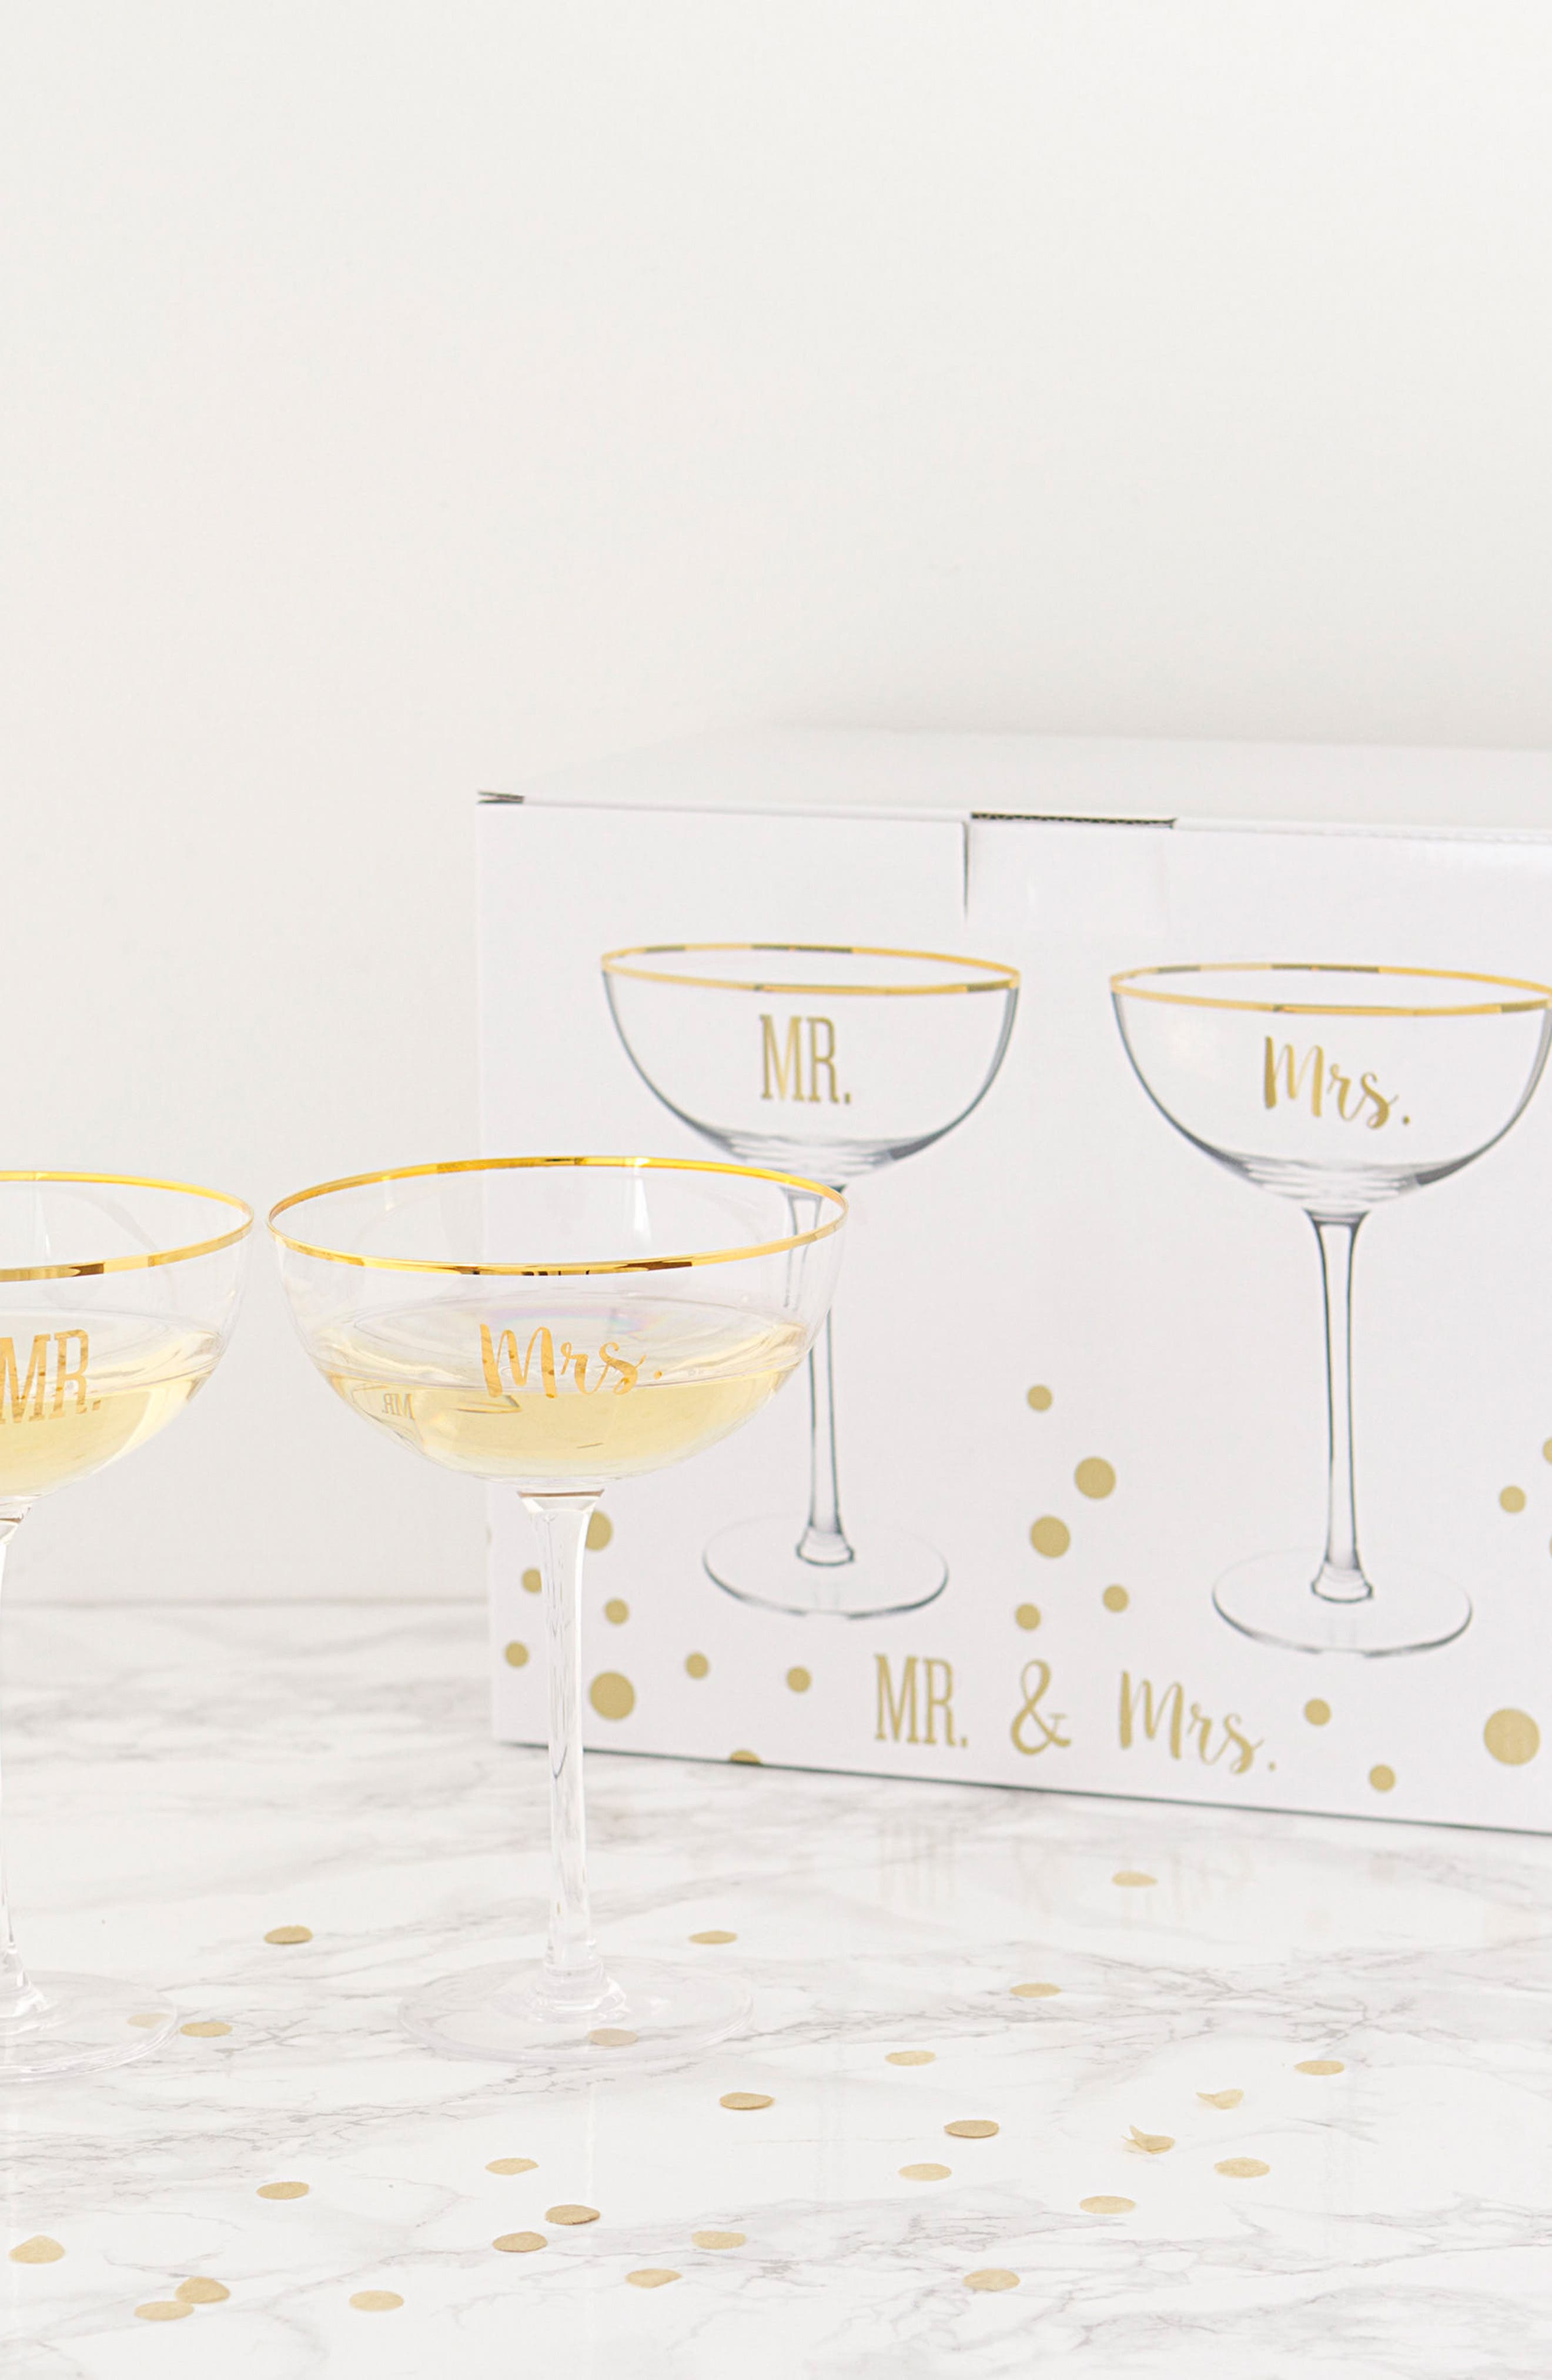 Mr. & Mrs. Set of 2 Champagne Coupe Toasting Glasses,                             Alternate thumbnail 8, color,                             Gold